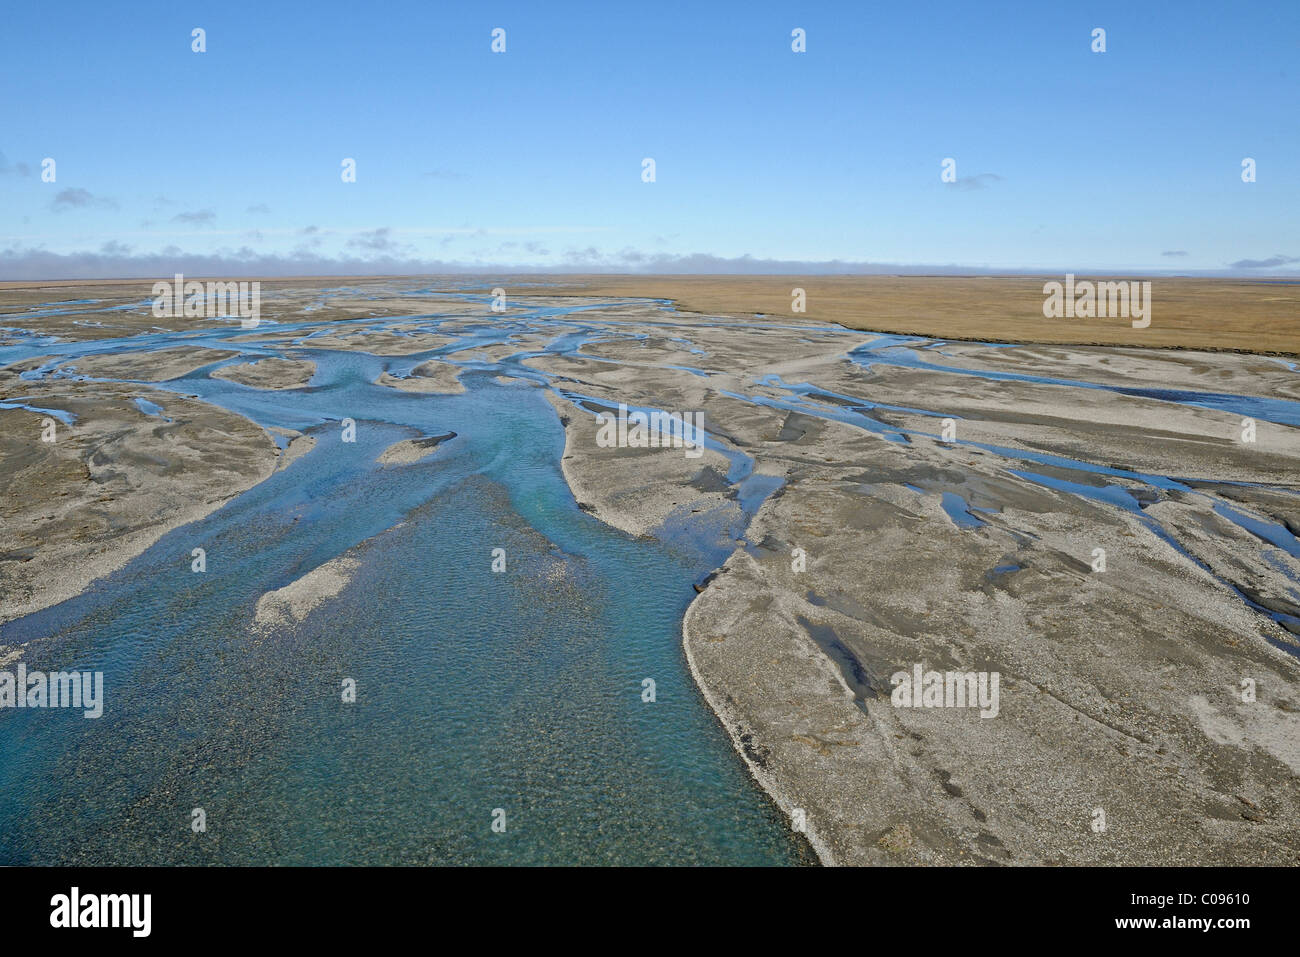 View of the Hulahula River flowing through the Arctic Coastal Plain in ANWR, Arctic Alaska, Summer - Stock Image